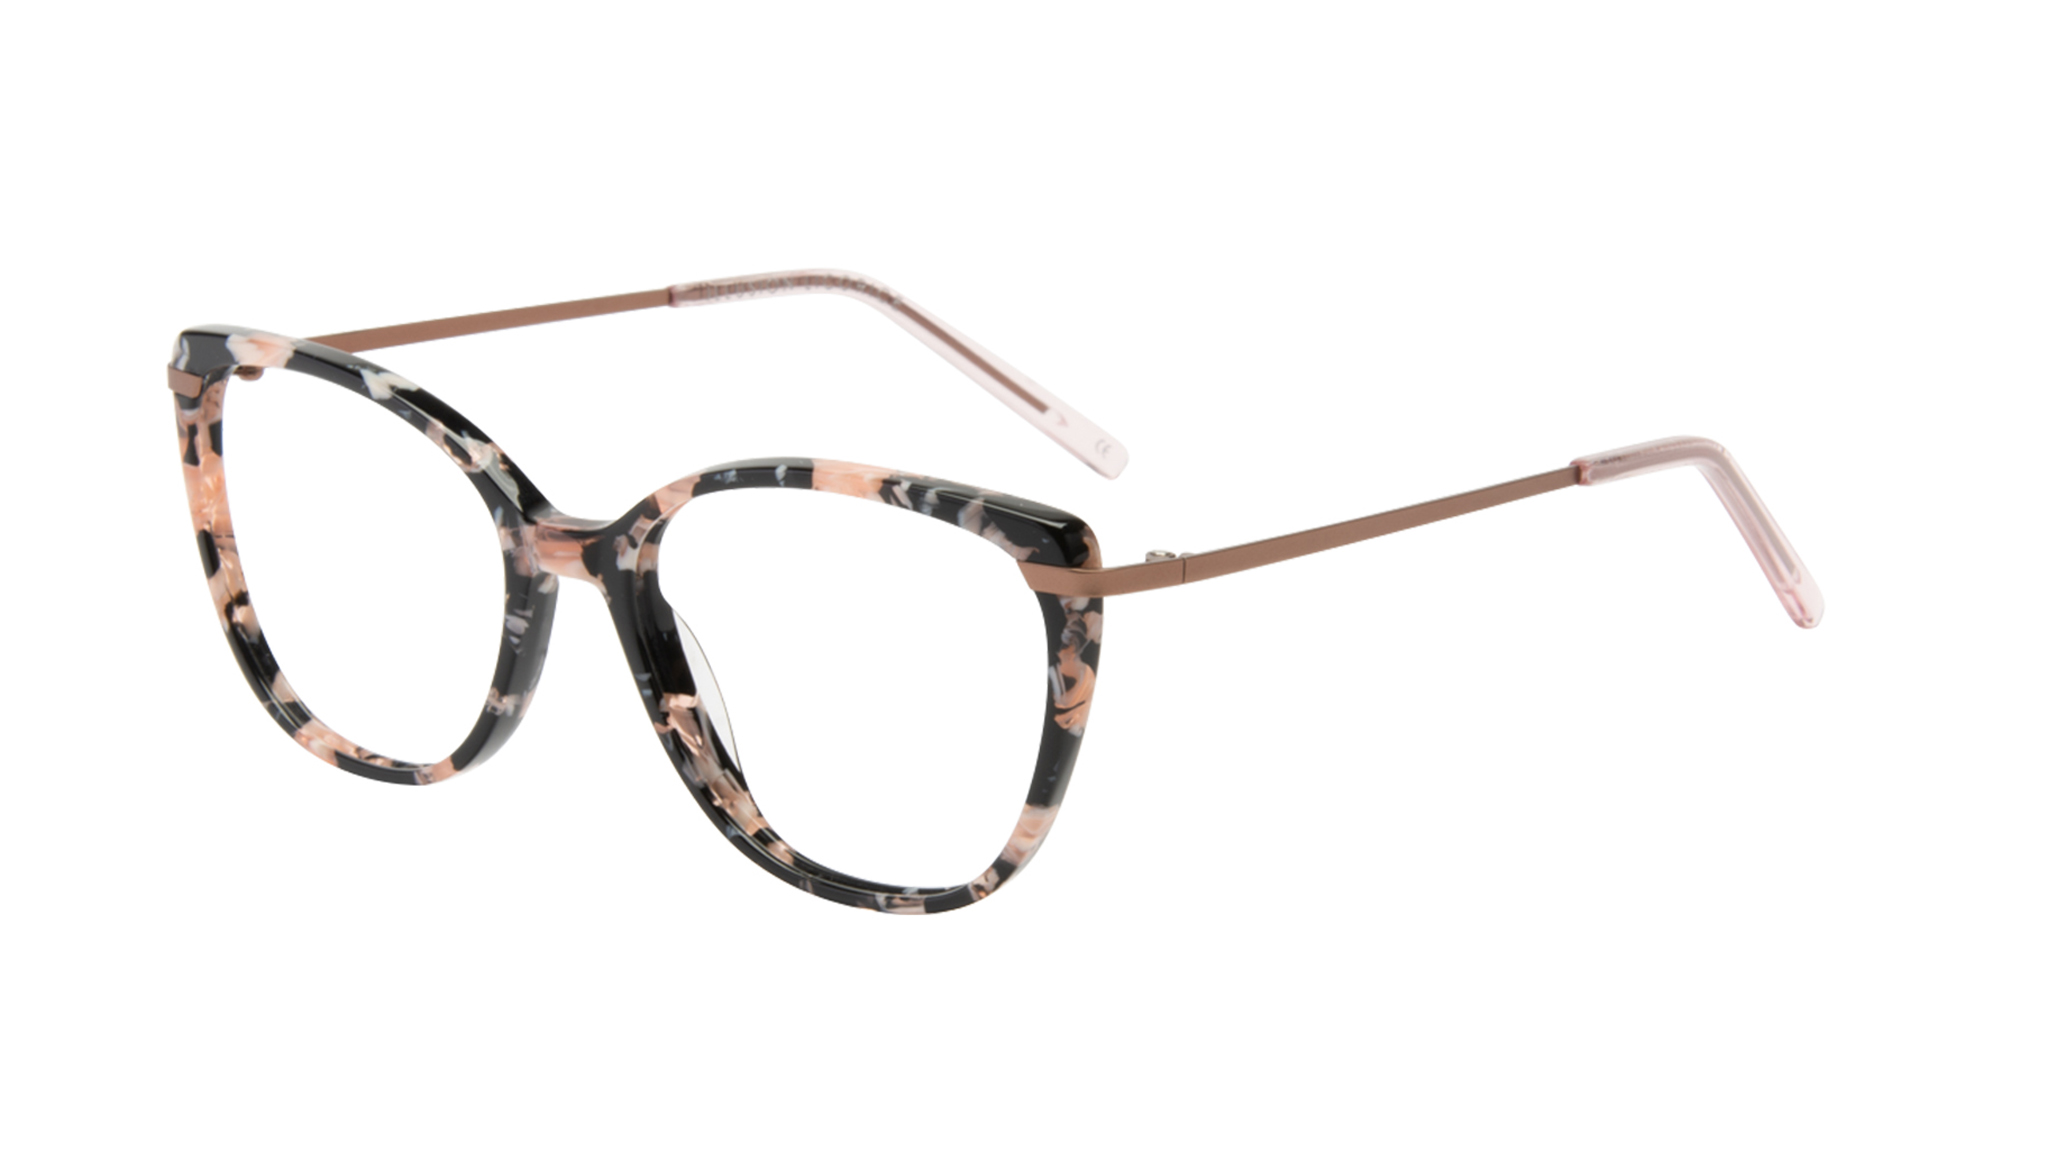 df4ec31f976d Affordable fashion glasses cat eye rectangle square eyeglasses women  illusion licorice tilt jpg 1600x707 Mlg glasses